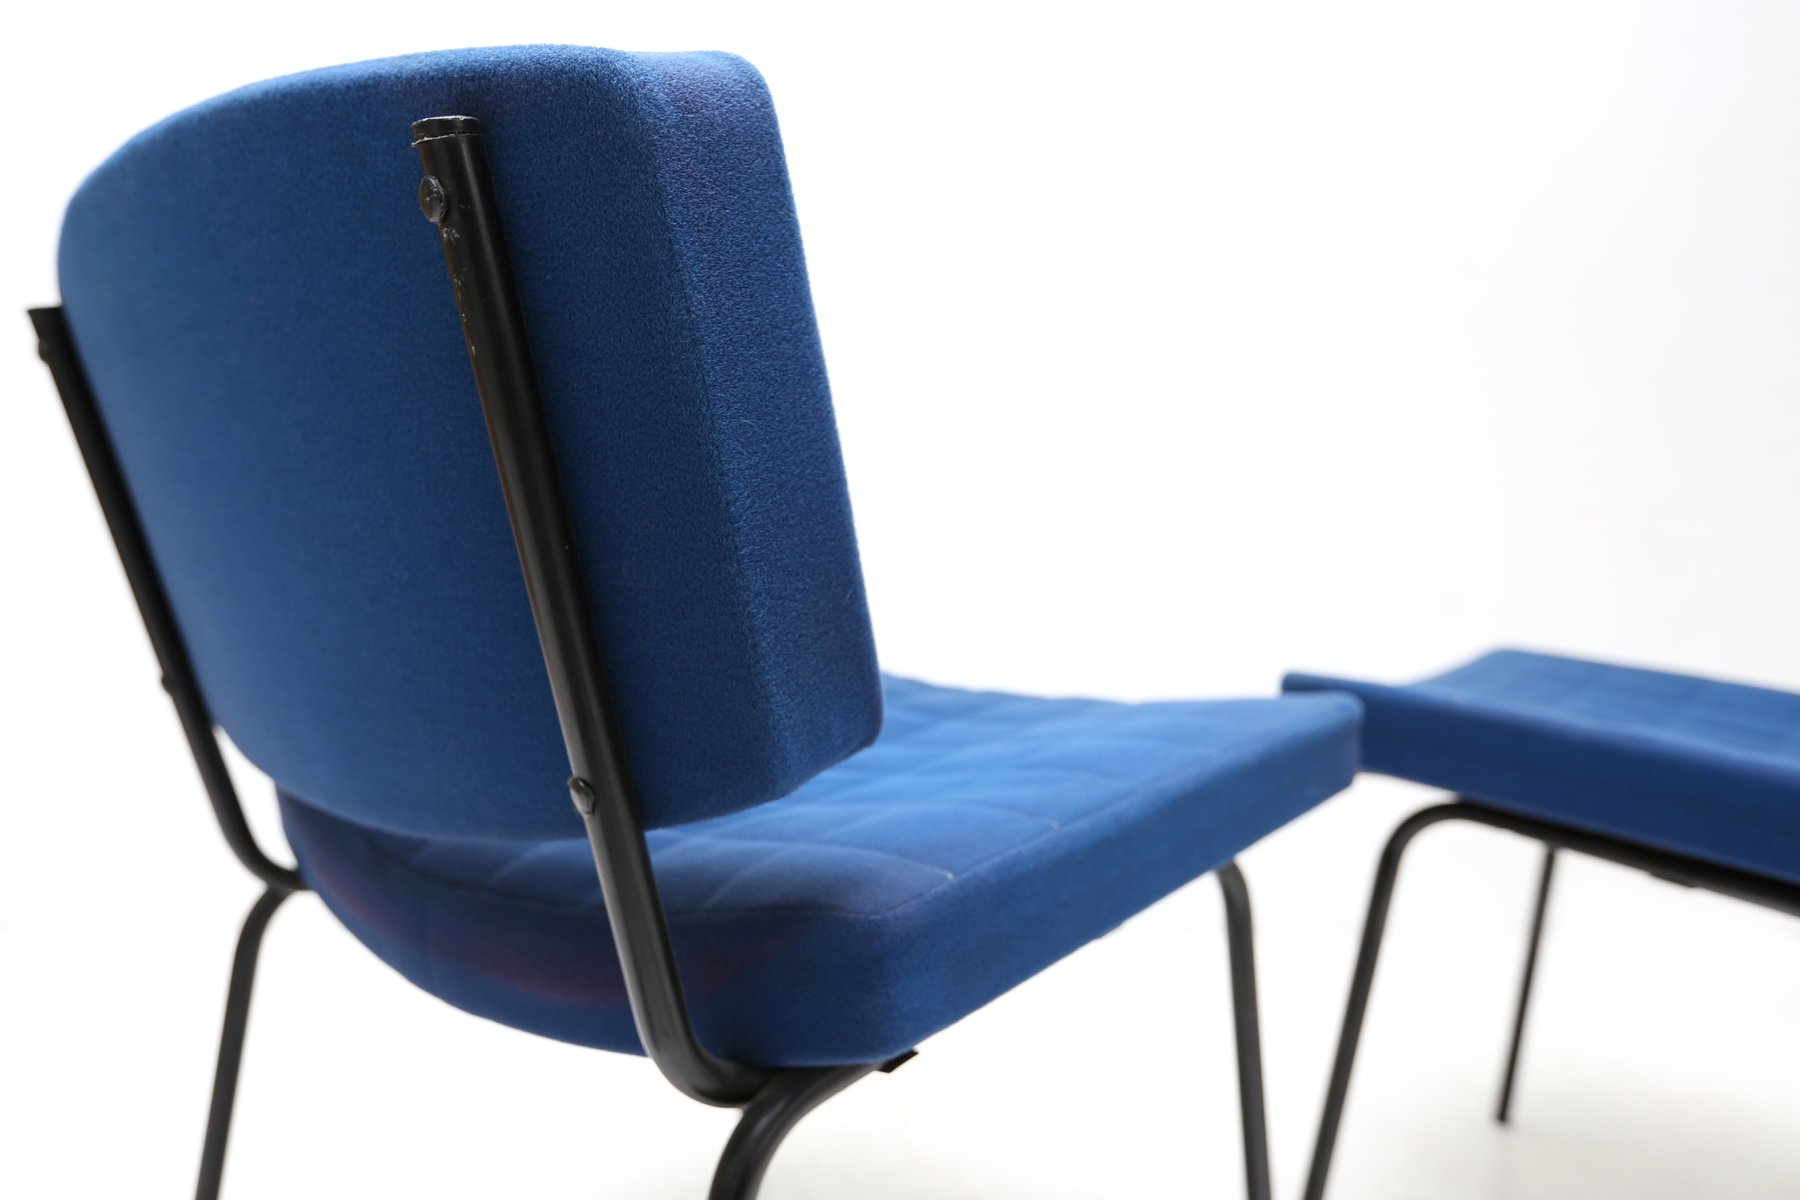 royal blue chairs swivel chair amazon by pierre guariche for meurop 1950s set of 2